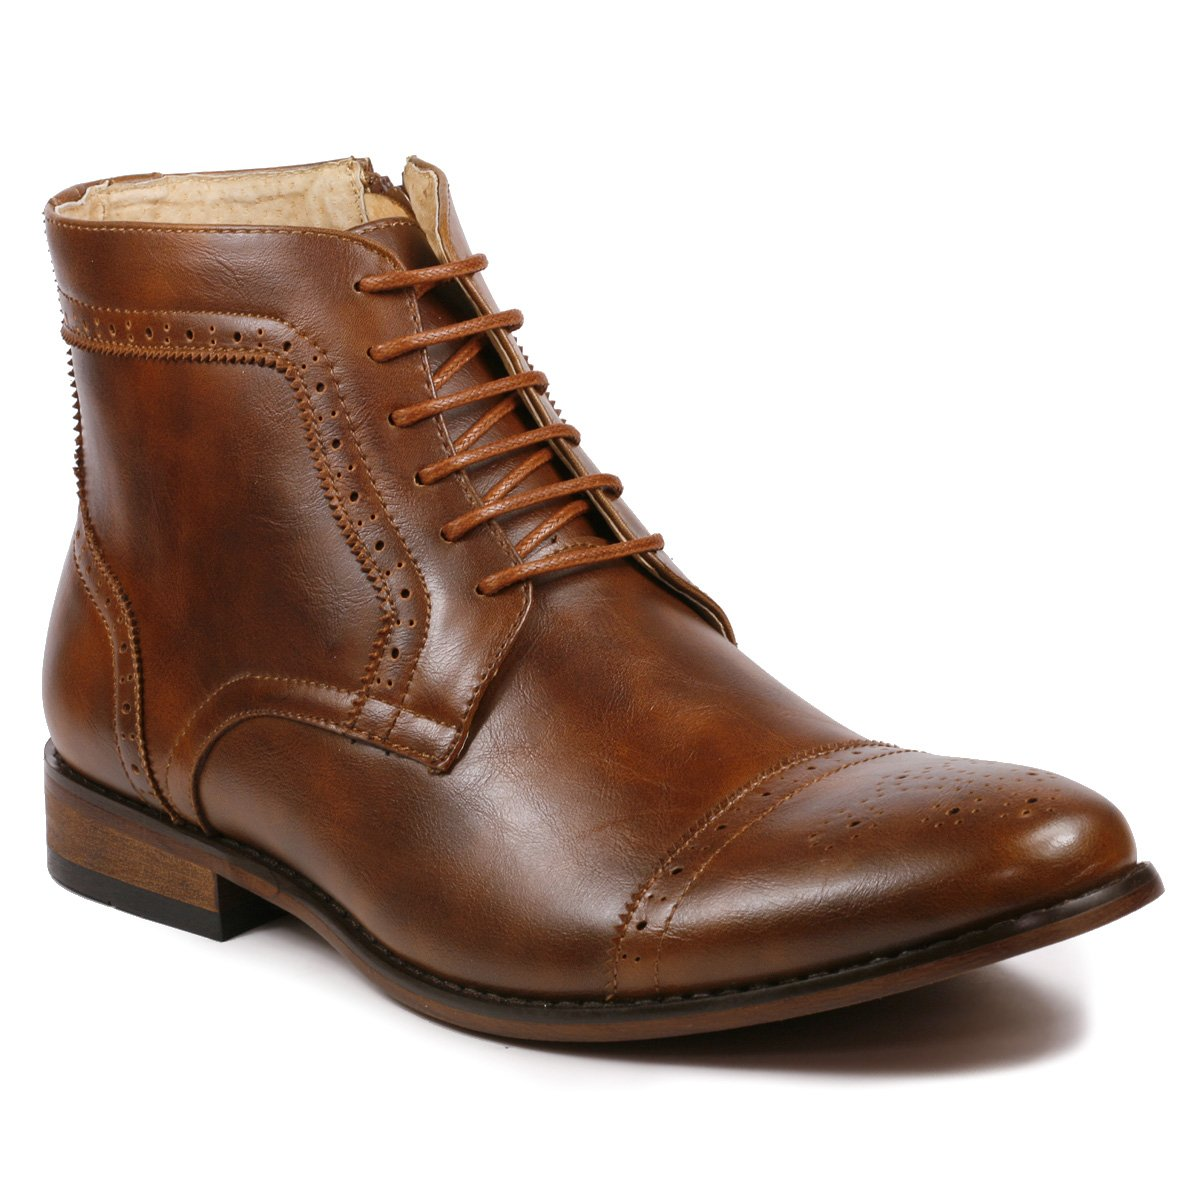 Metrocharm MC123 Men's Cap Toe Lace up Dress Casual Ankle Boot (9, Brown) by Metrocharm